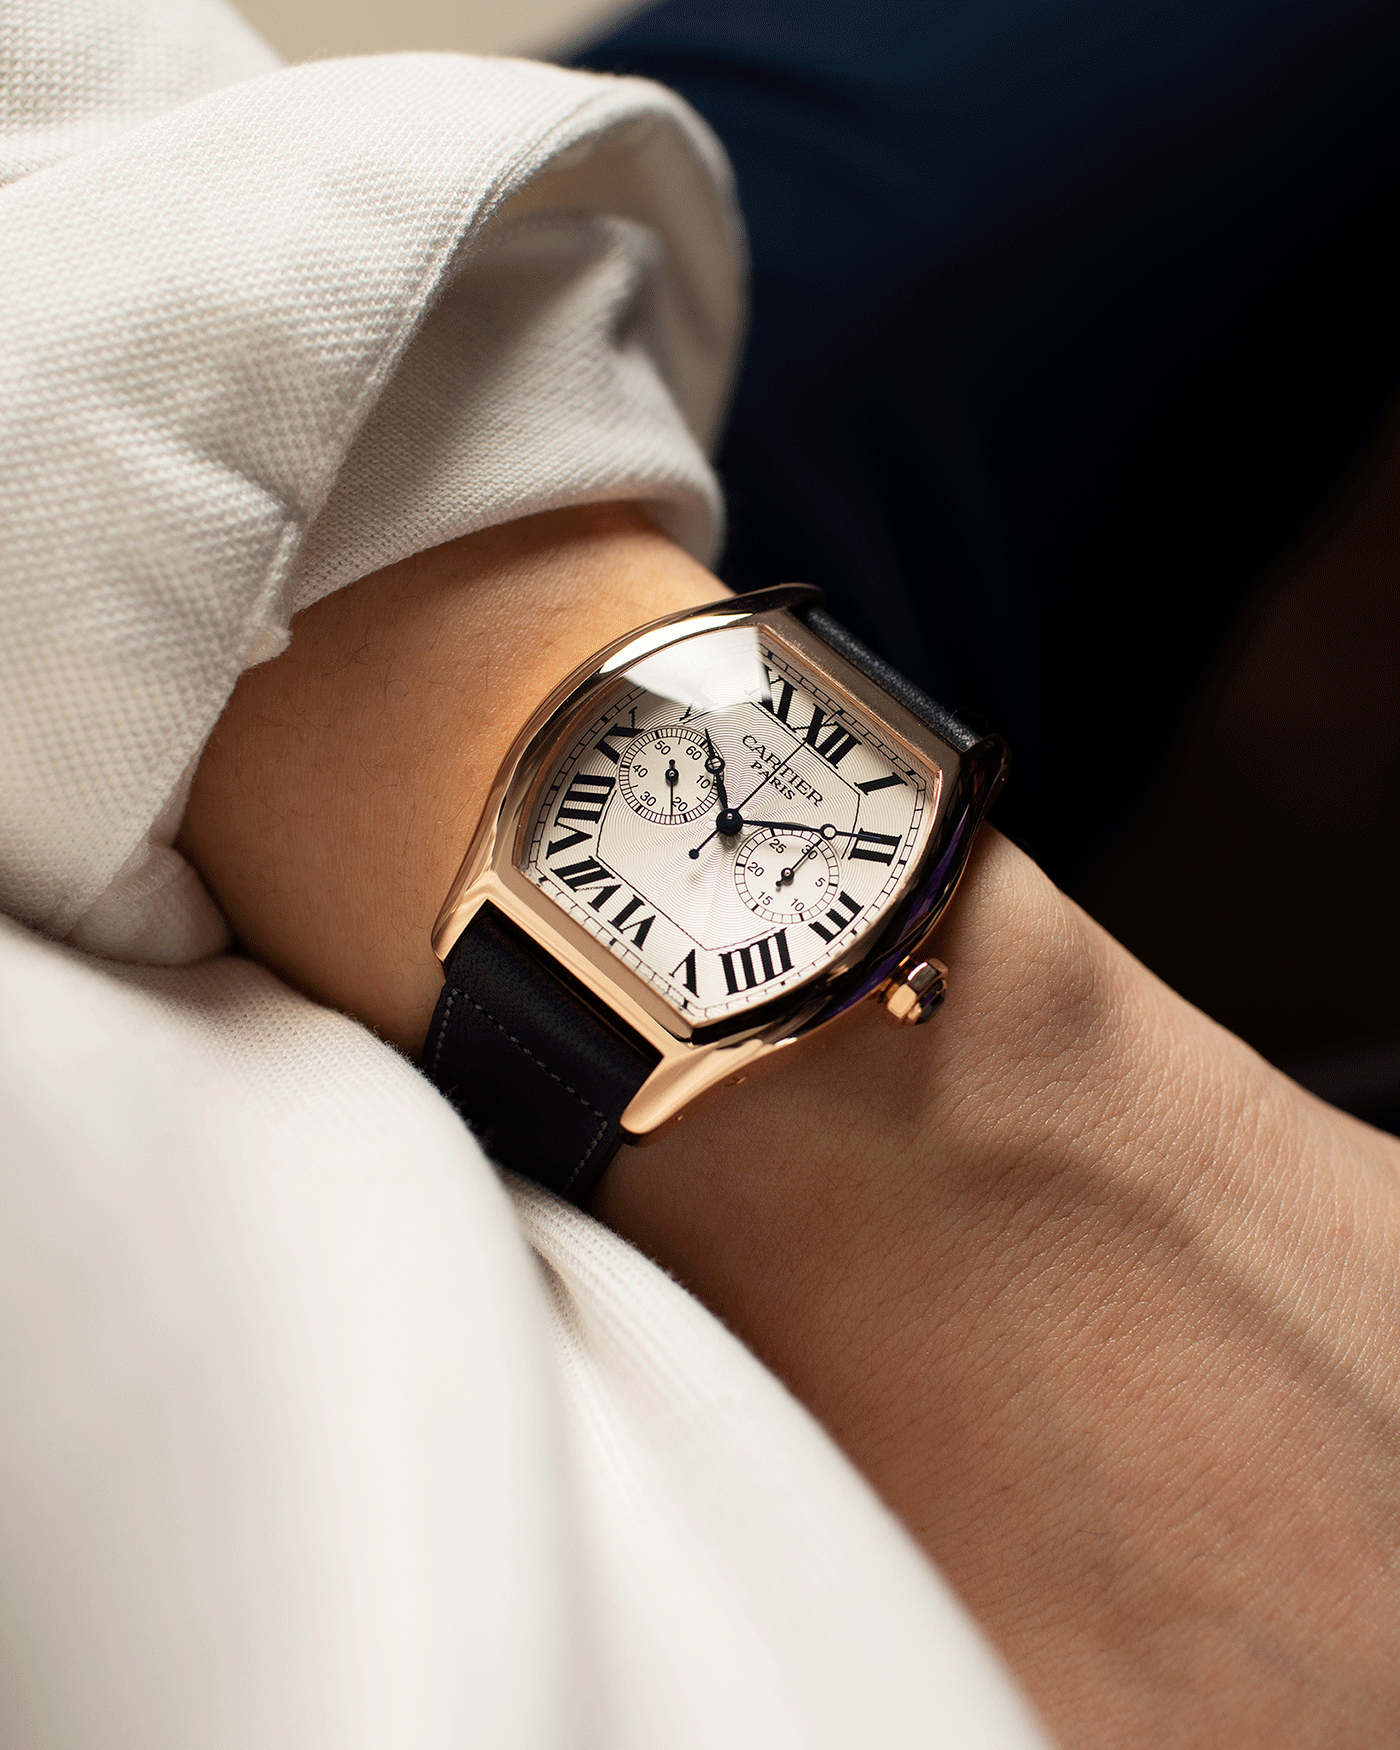 Brand: Cartier Year: 2005 Model: CPCP Collection Prive Tortue Monopoussoir XL Reference: 2781 Material: 18k Rose Gold Movement: THA Cal. 045MC Case Diameter: 37 x 39 mm Strap: Navy Blue Accurate Form Japanese Calf Strap with separate 18k Cartier Rose Gold Deployant